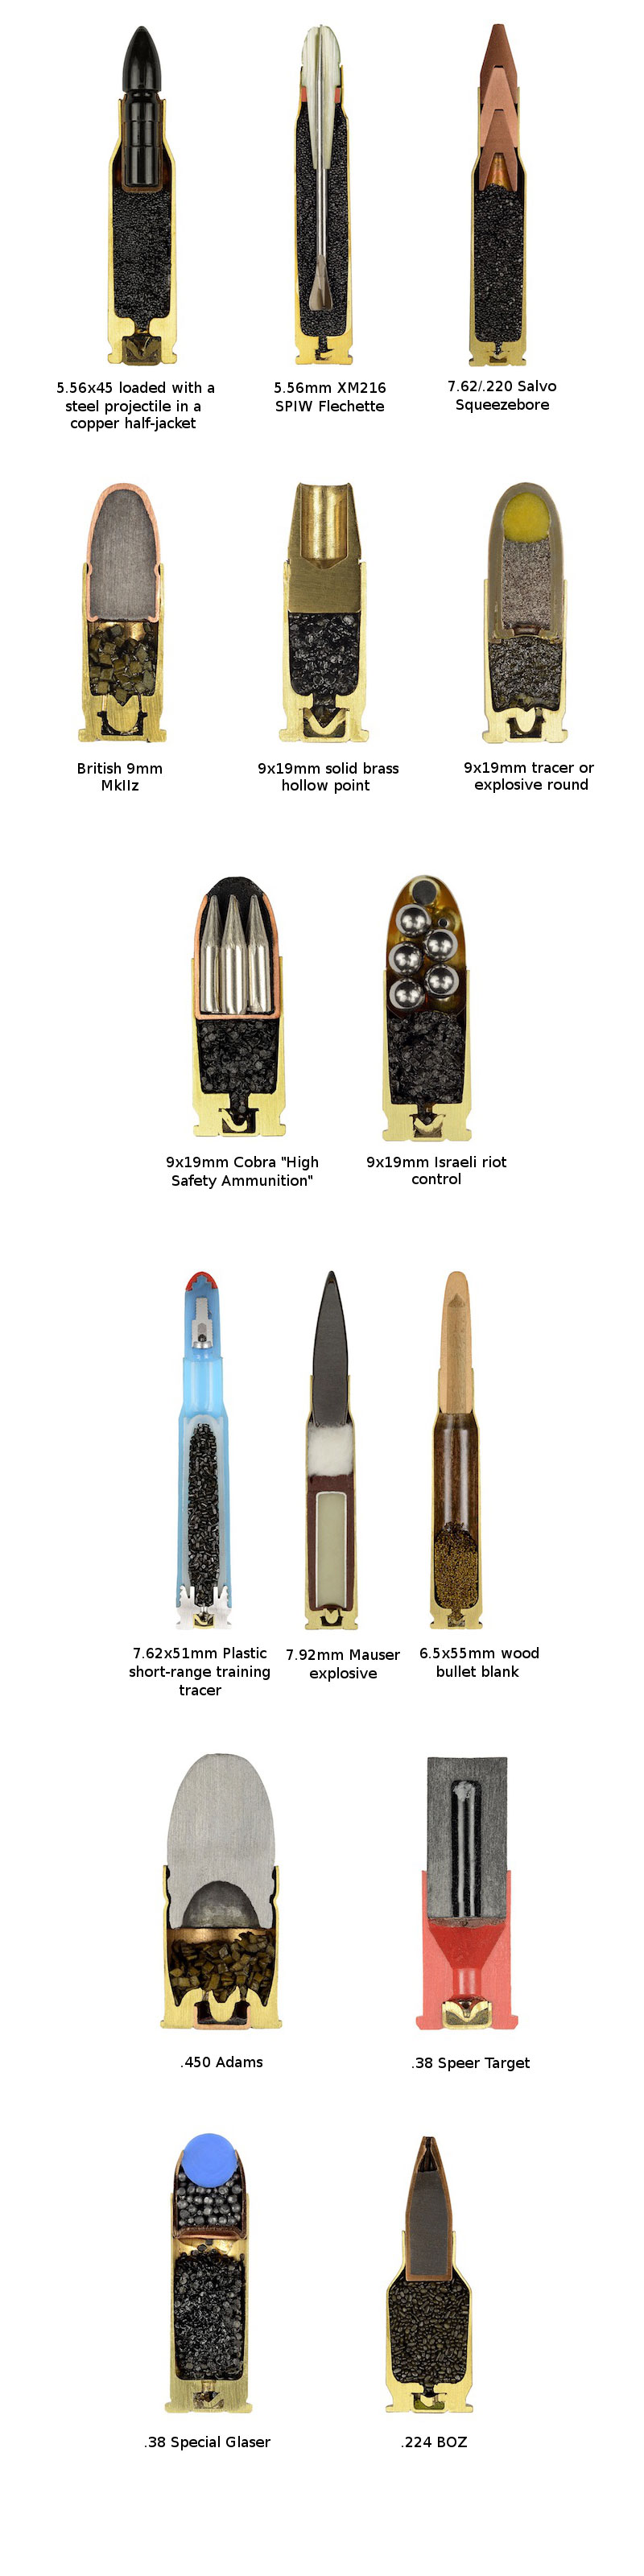 cross-sections-of-ammo-sabine-pearlman-(7)